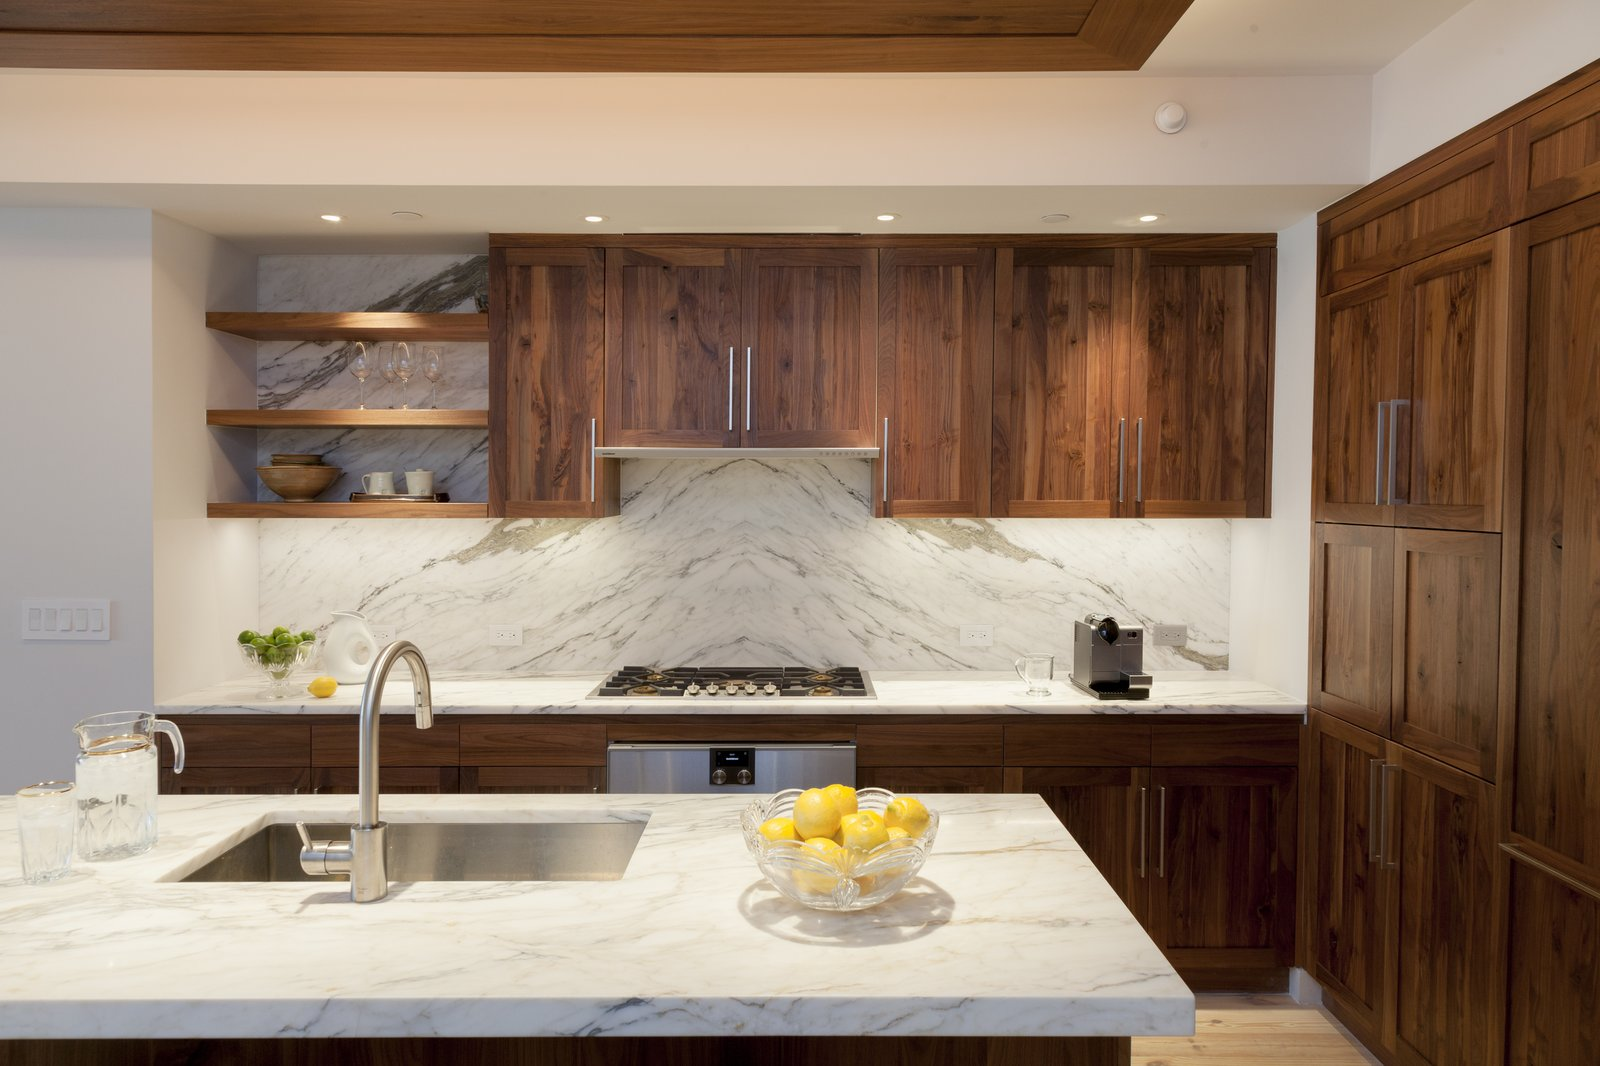 Kitchen, Marble, Wood, Stone Slab, Ceiling, Pendant, Light Hardwood, Accent, Recessed, Refrigerator, Wall Oven, Cooktops, Range, Range Hood, Wine Cooler, Ice Maker, Dishwasher, Microwave, and Undermount Walnut and book-matched  Calcutta kitchen  Best Kitchen Cooktops Recessed Wall Oven Wood Accent Photos from Pierhouse At Brooklyn Bridge Park Condo